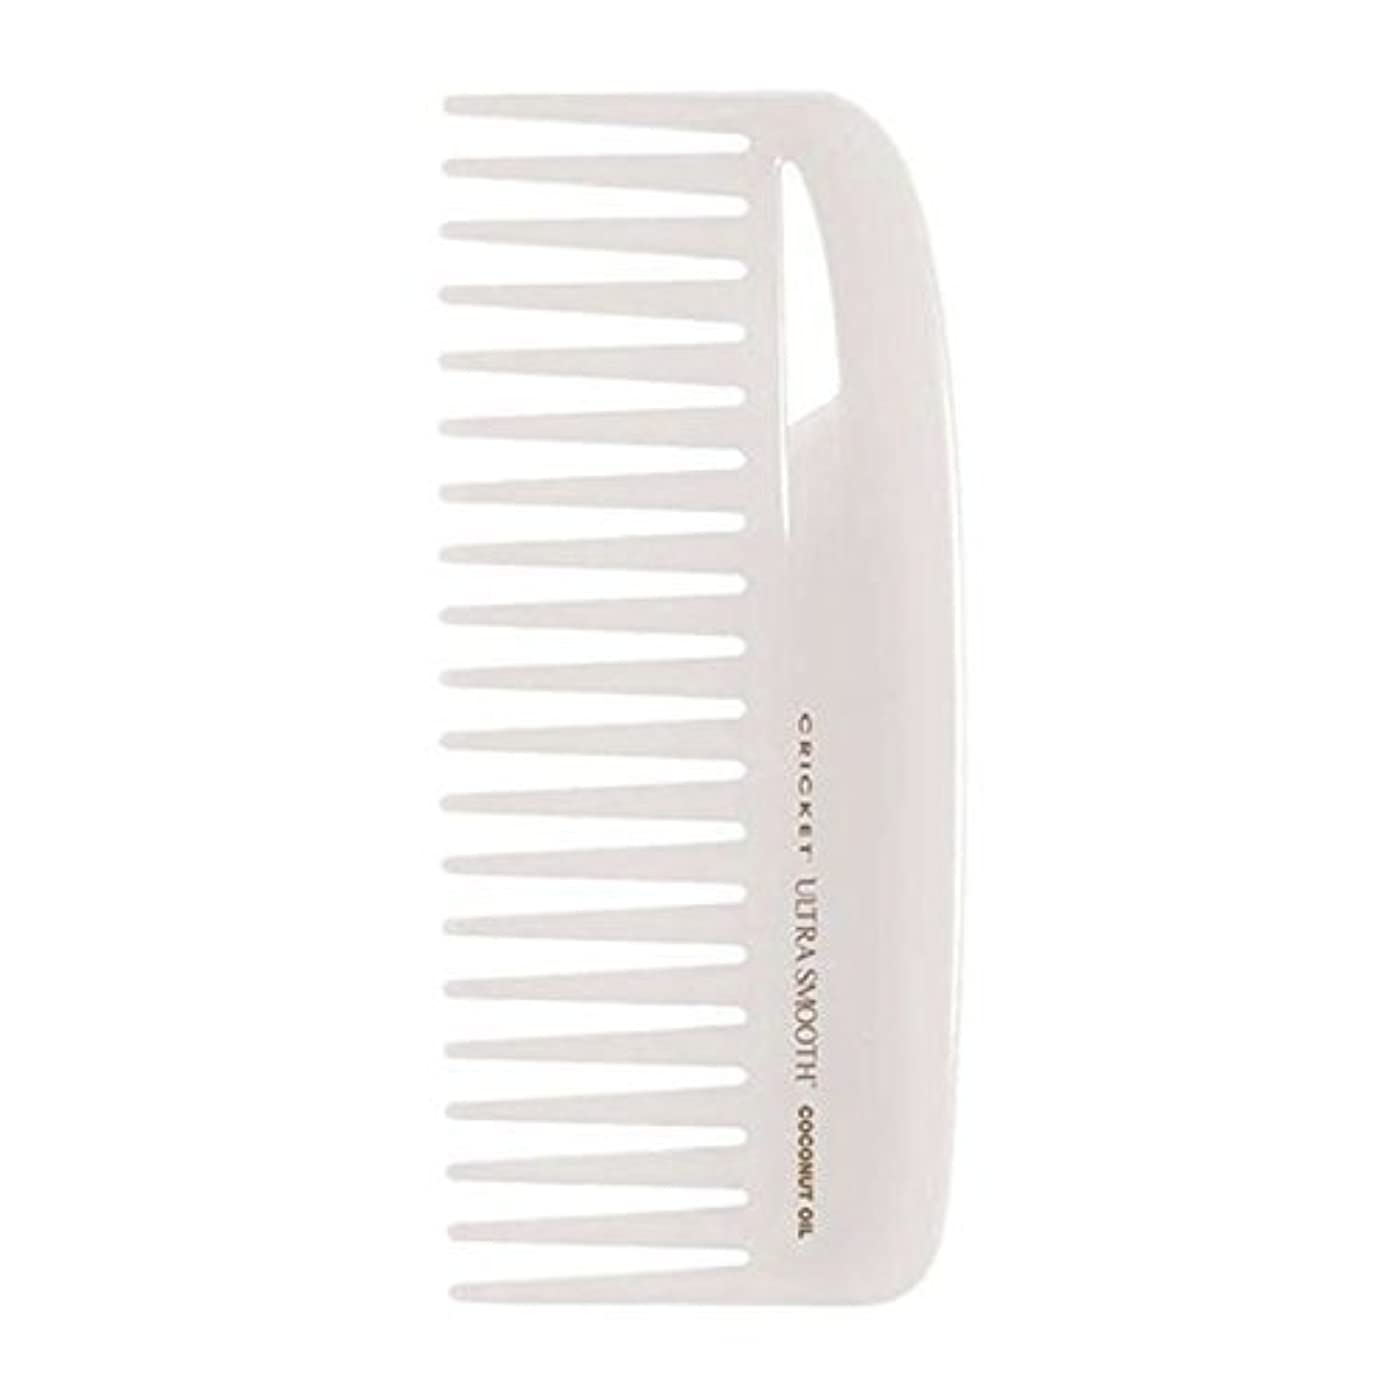 決定的虚弱ファッションCricket Ultra Smooth Coconut Conditioning Comb, 1 Count [並行輸入品]